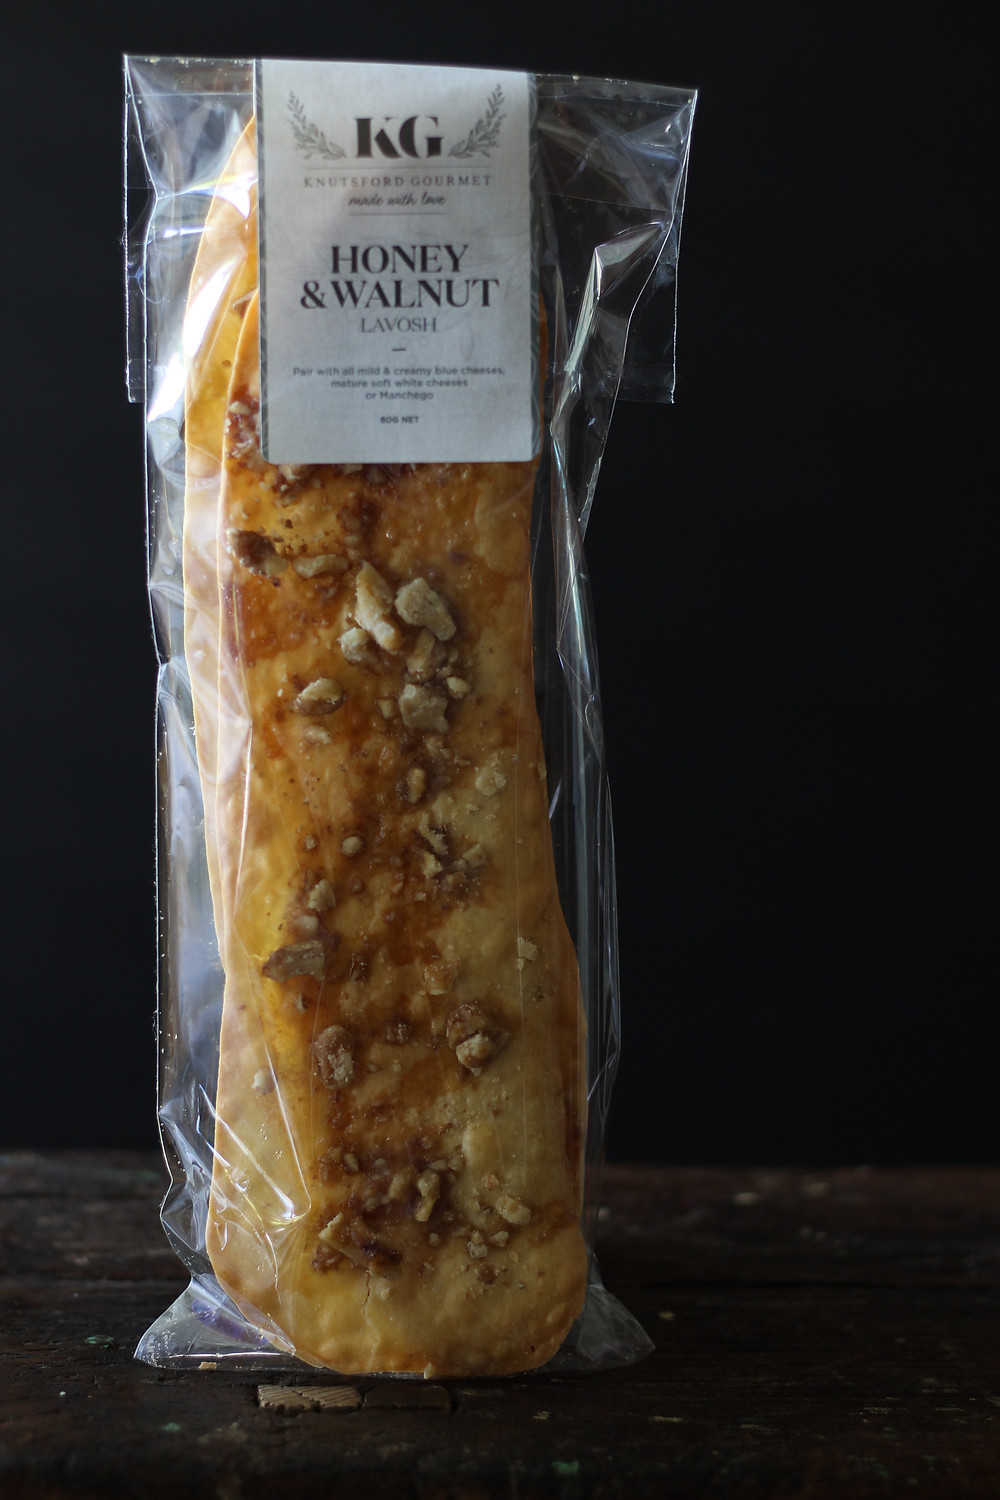 Honey & Walnut Lavosh